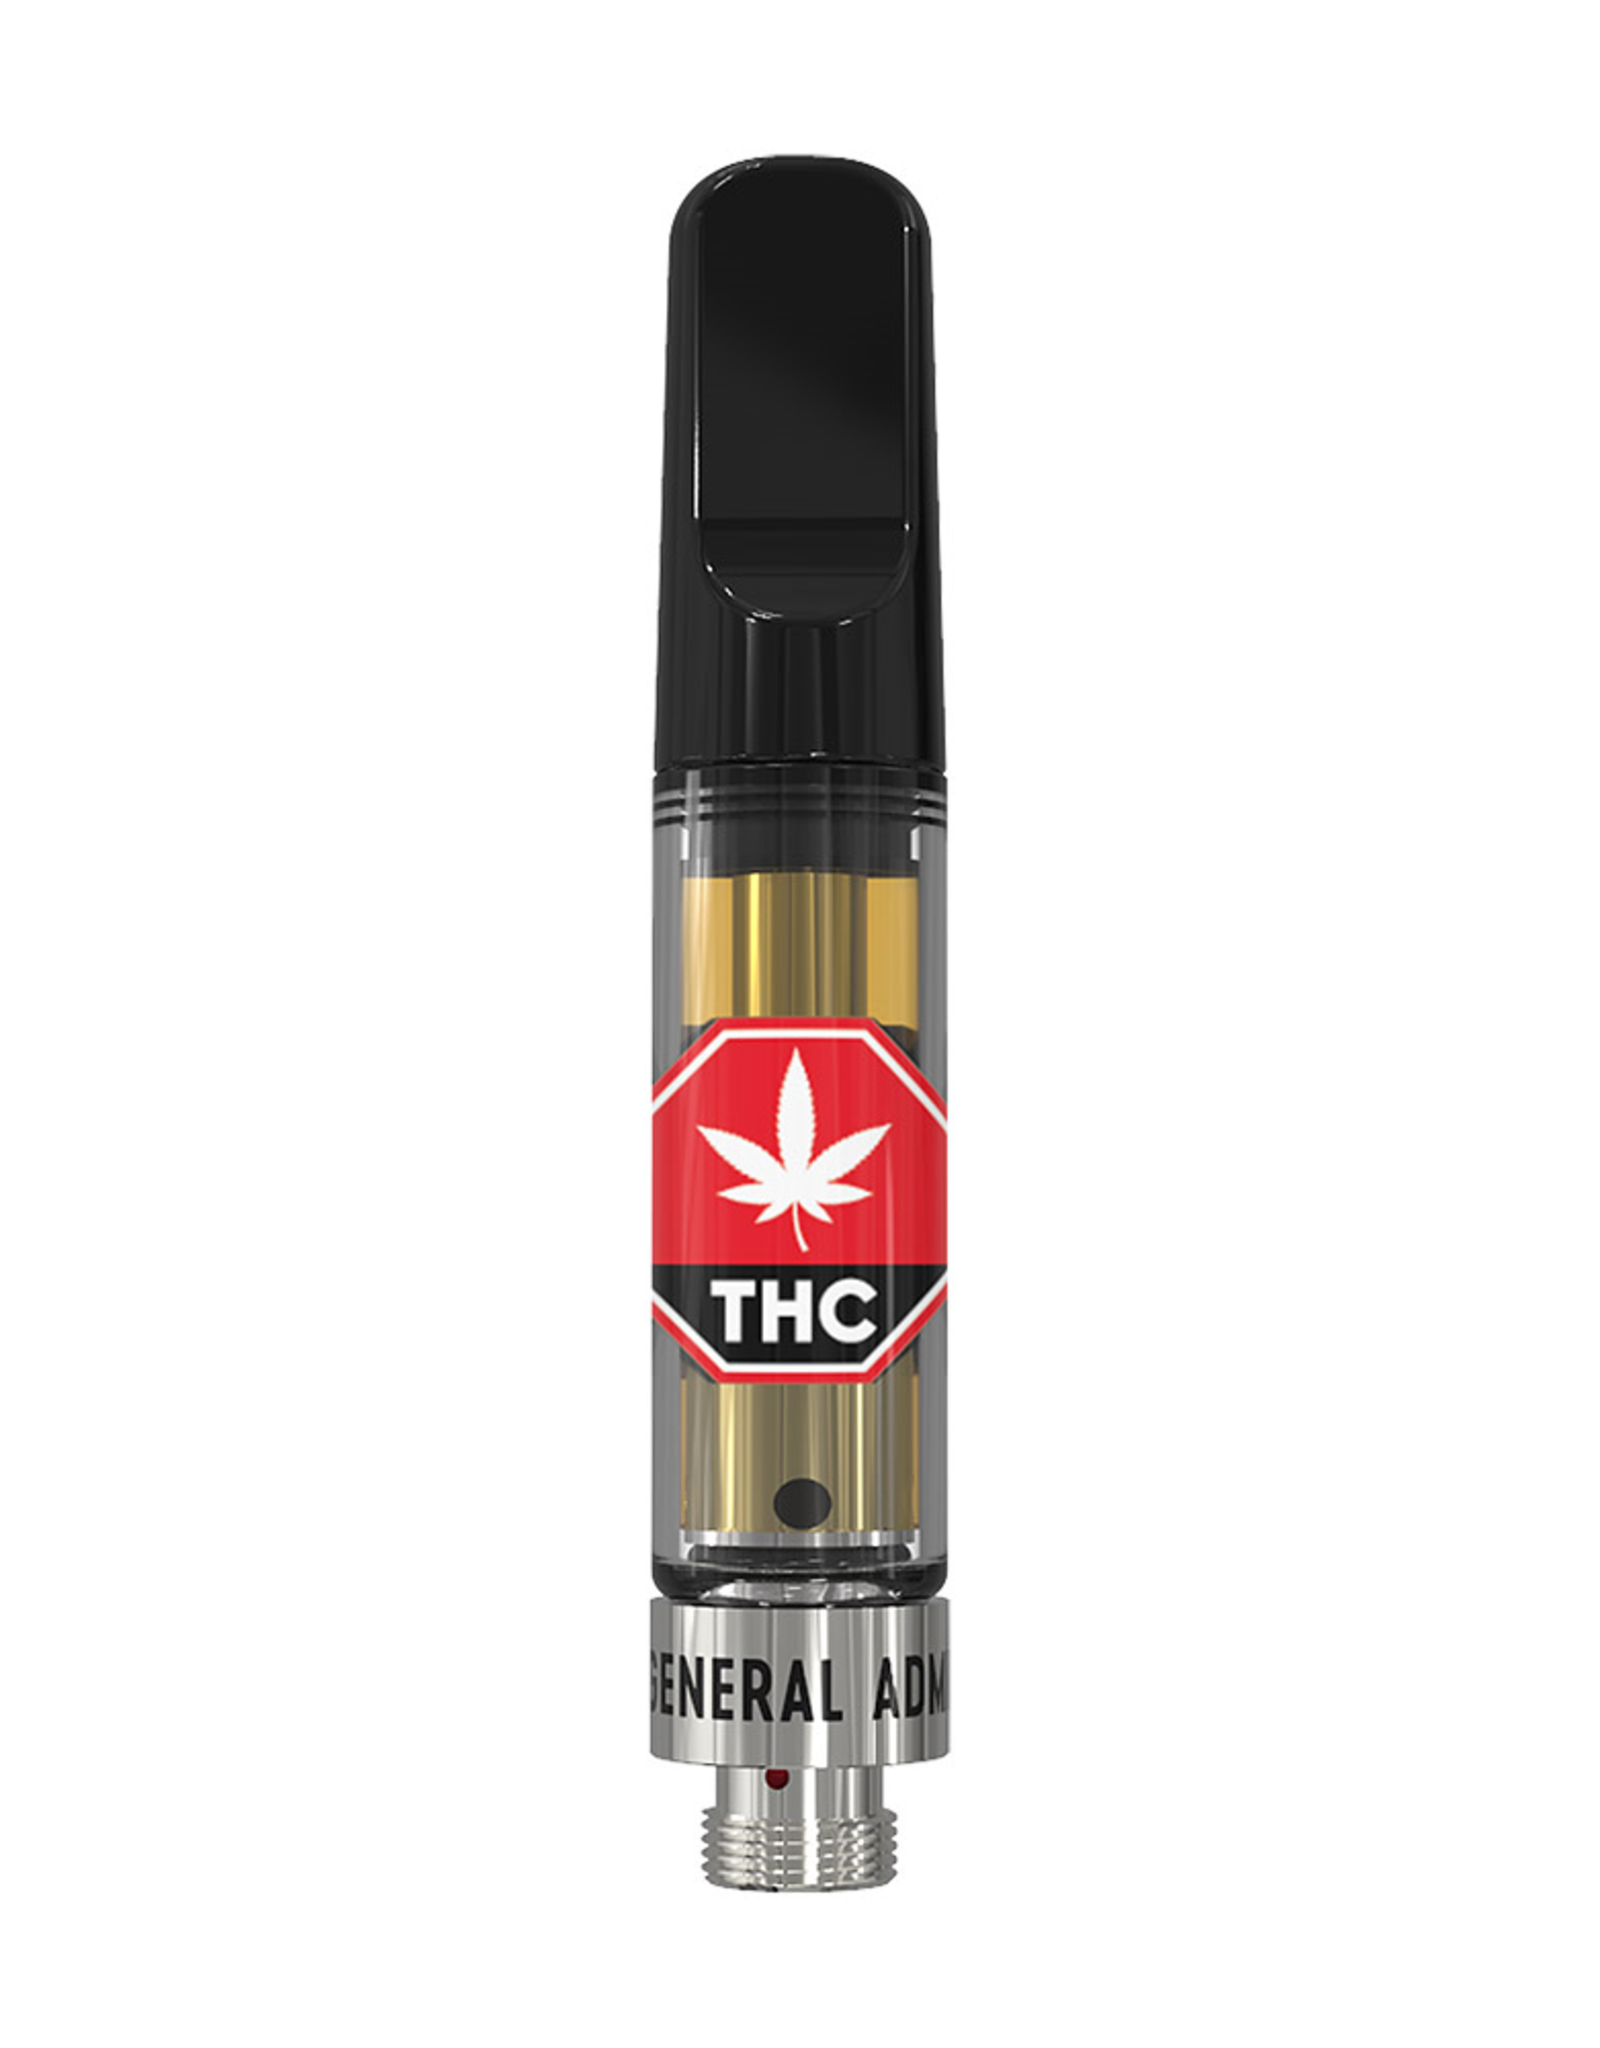 General Admission General Admission - Guava Chemdog Live Resin 1G Cartridge